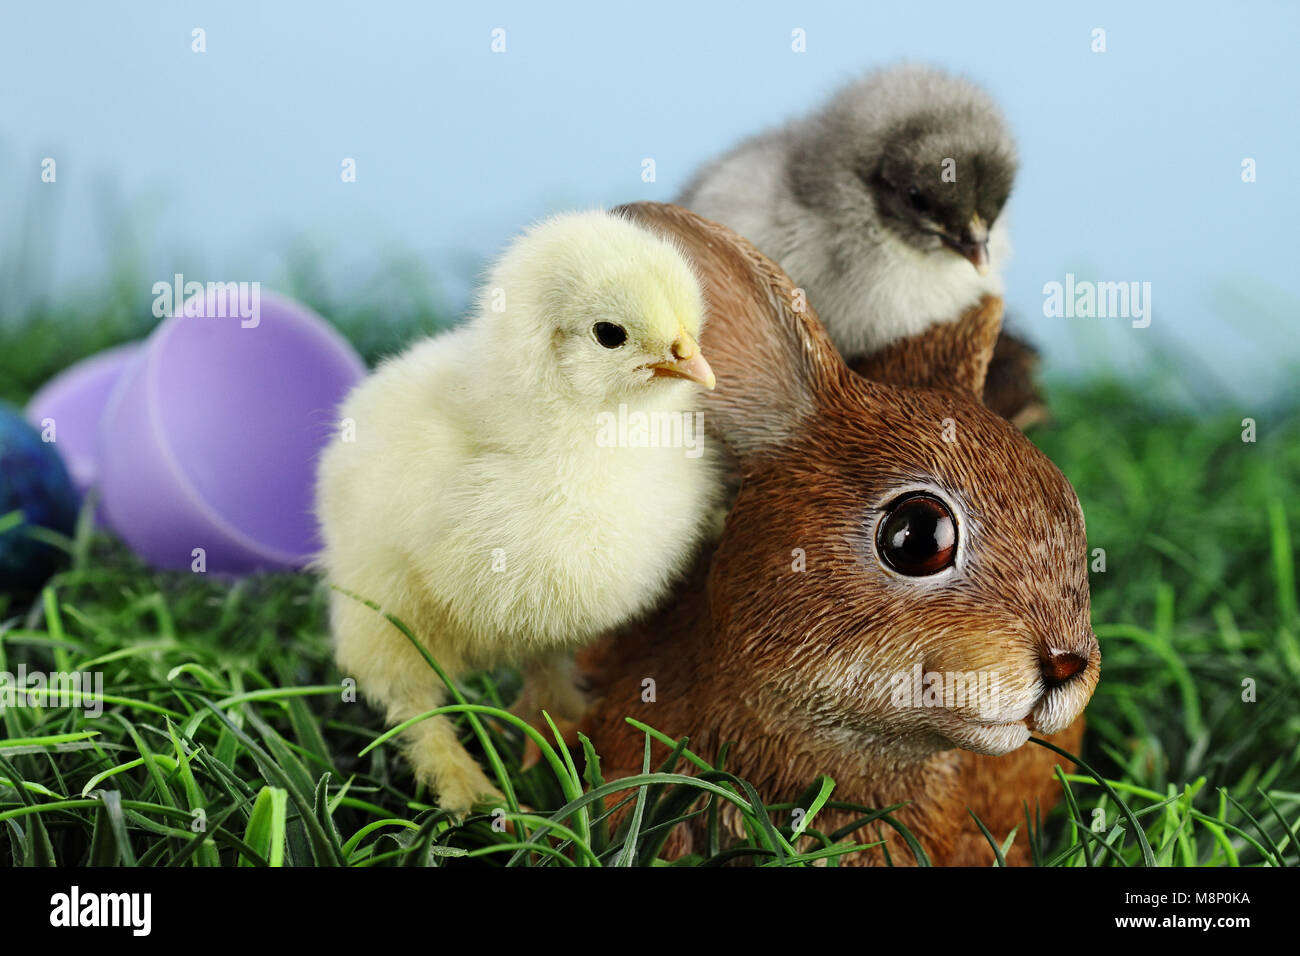 Little white and yellow Easter chick standing by and adorable resin brown bunny rabbit with a grey chick sleeping - Stock Image